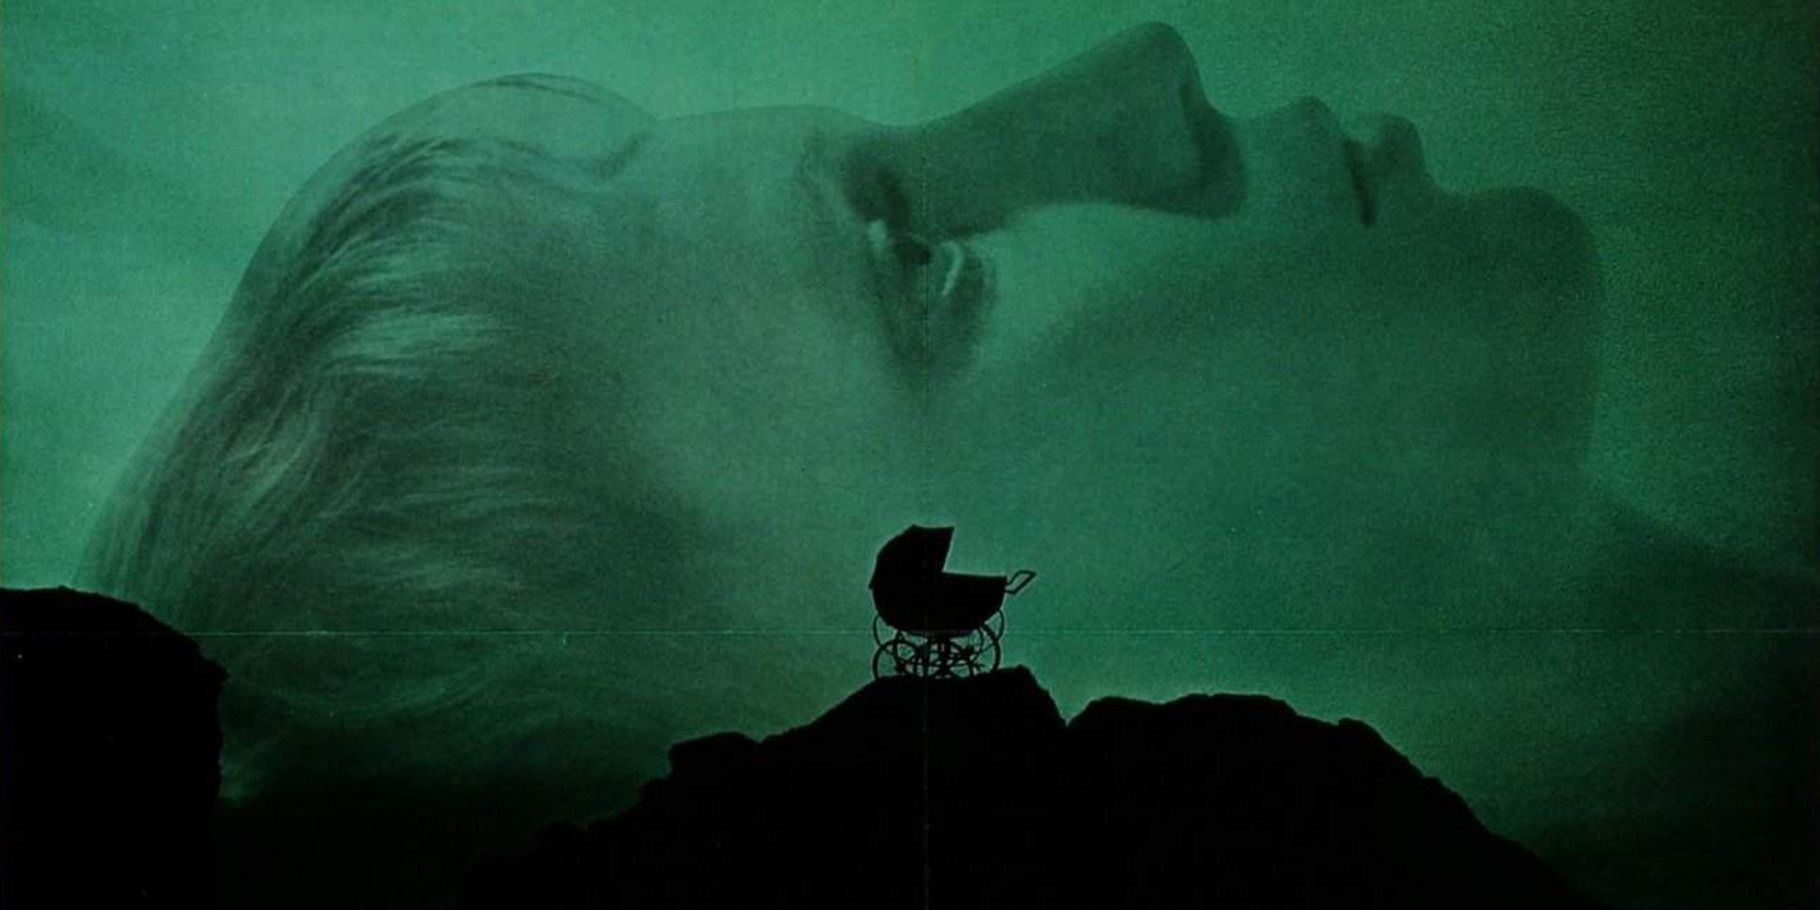 What Makes The Paranoia Of Rosemary's Baby So Effective